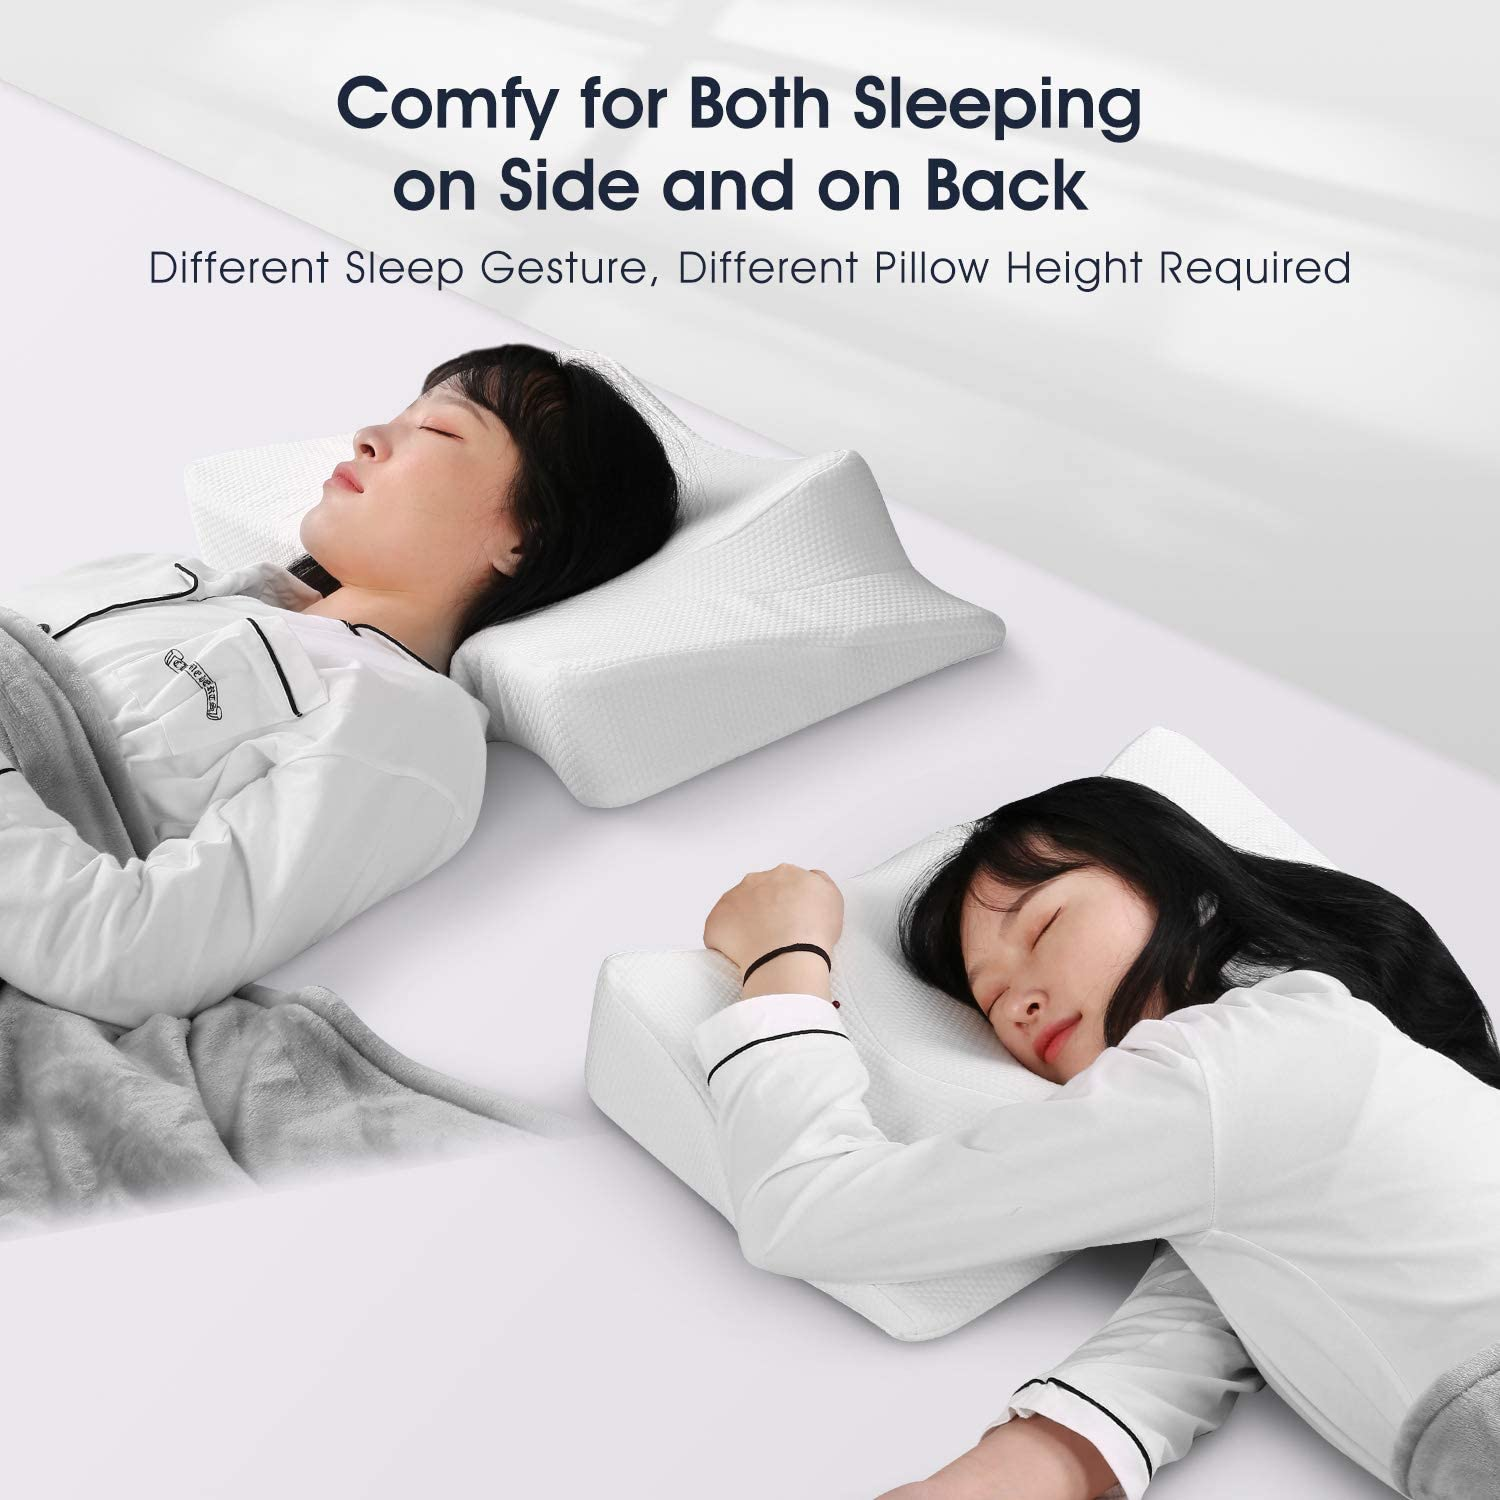 MARNUR Neck Pillow for Sleeping, Cervical Support Orthopedic Contour Memory Foam Pillow for Neck and Shoulder Pain Relief Sleeping, Suit for Sleeper on Side and Back, with Washable Pillow Case Cover: Home & Kitchen